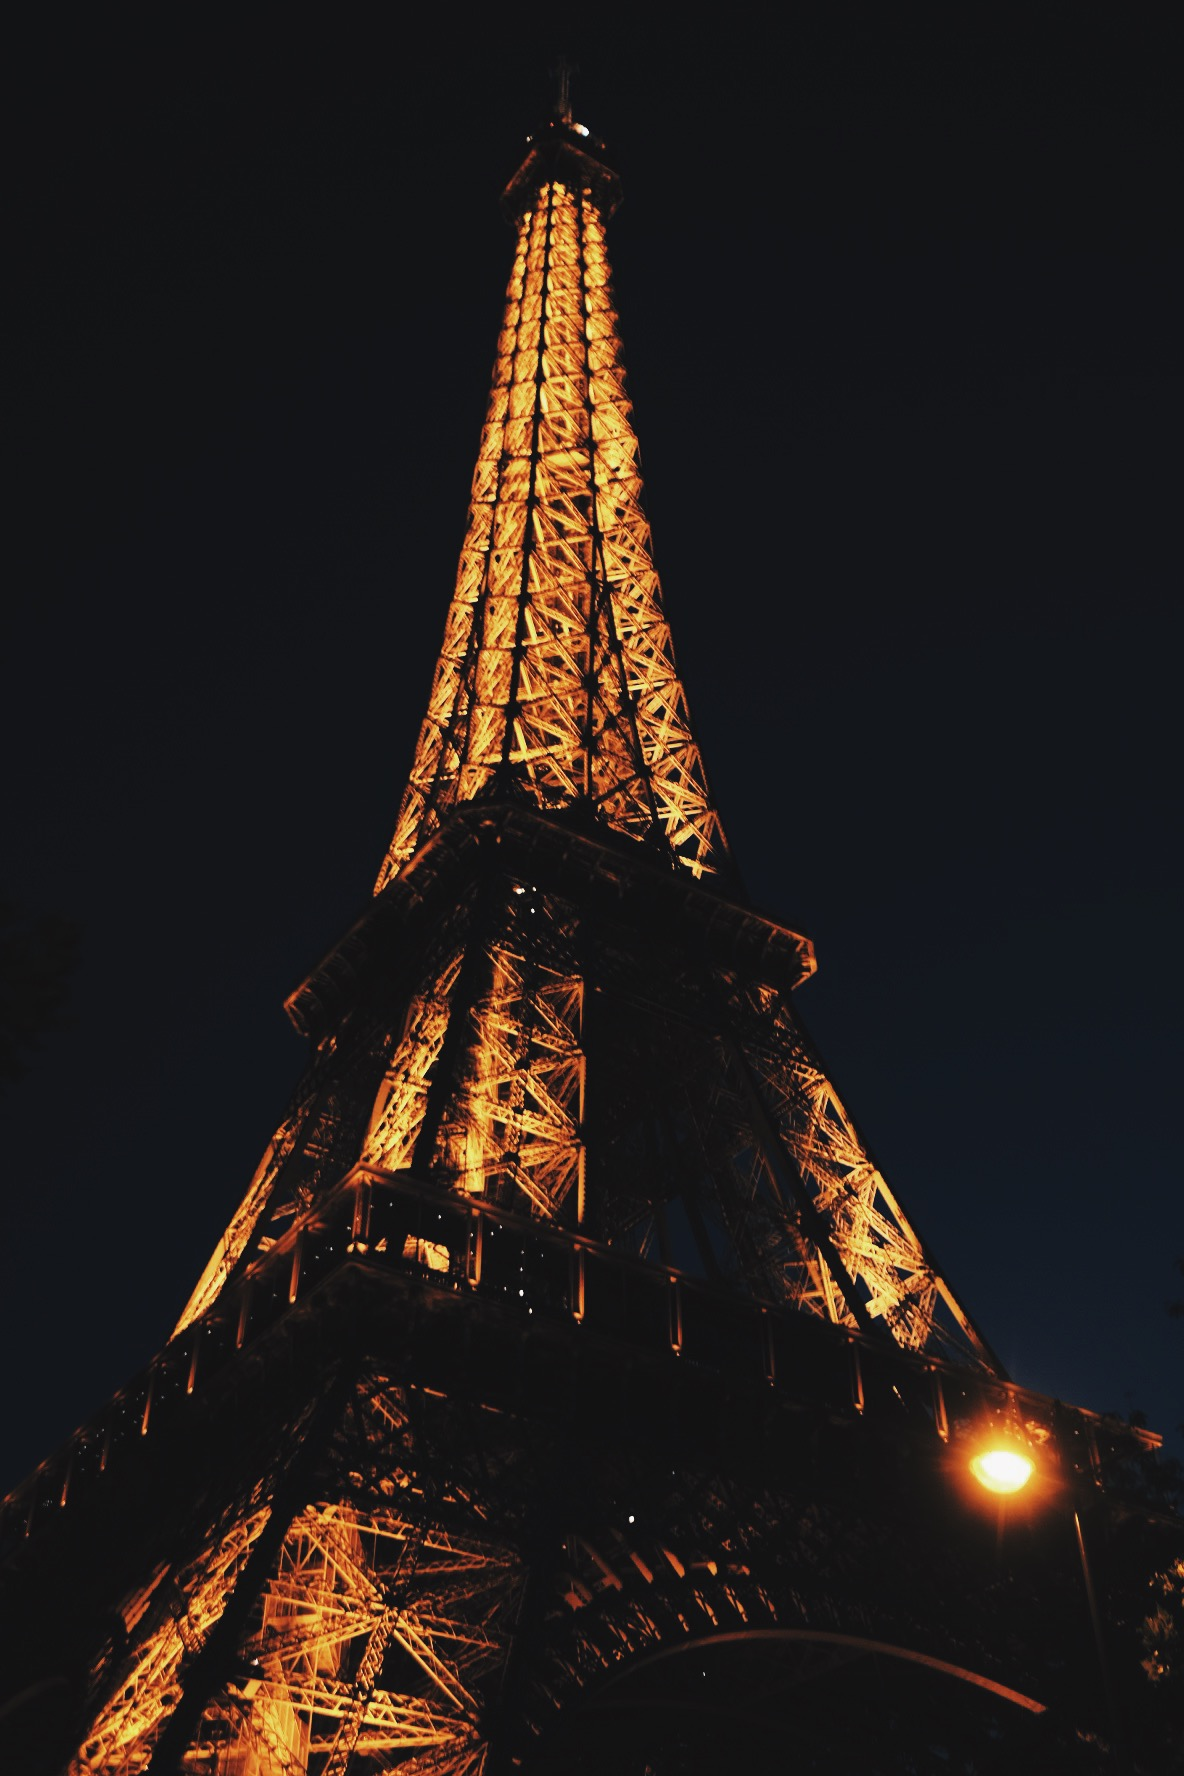 And so we ended our trip by being as cliche as humanly possible and embracing our tourism. We ate escargot and smoked cigarettes under the Eiffel Tower. When in Paris, right?